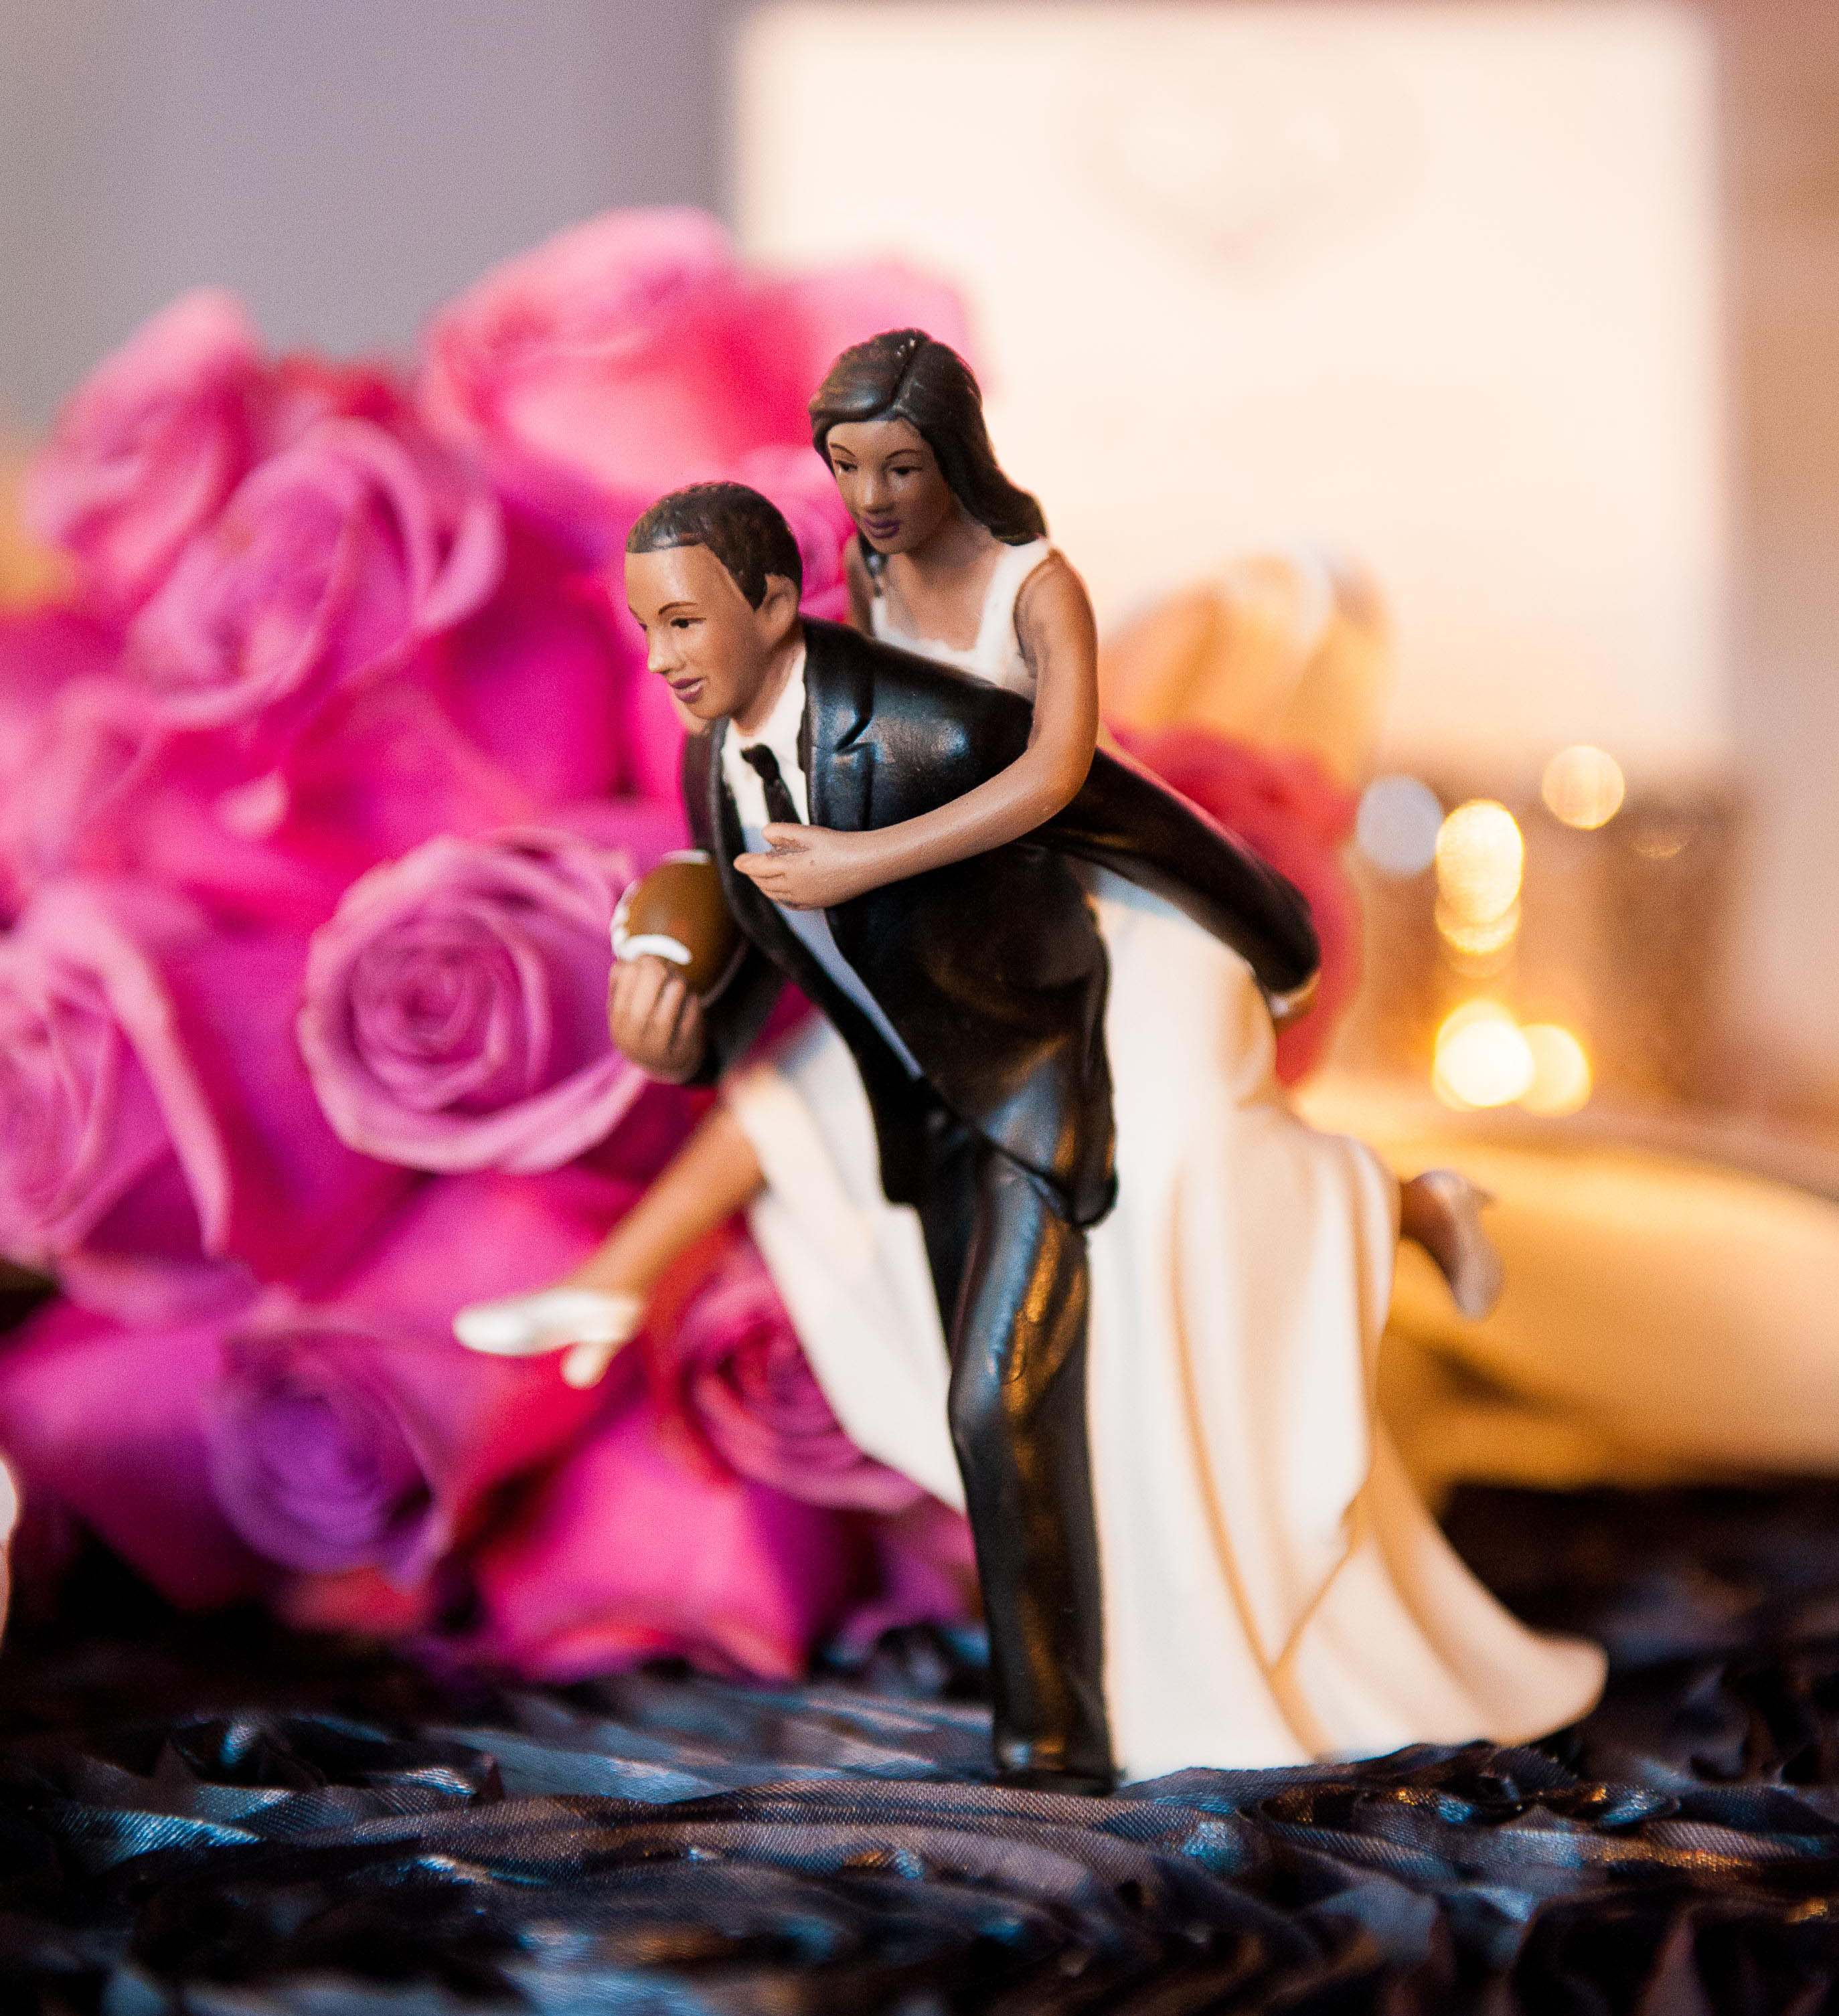 football player wedding cake topper with bride piggyback riding